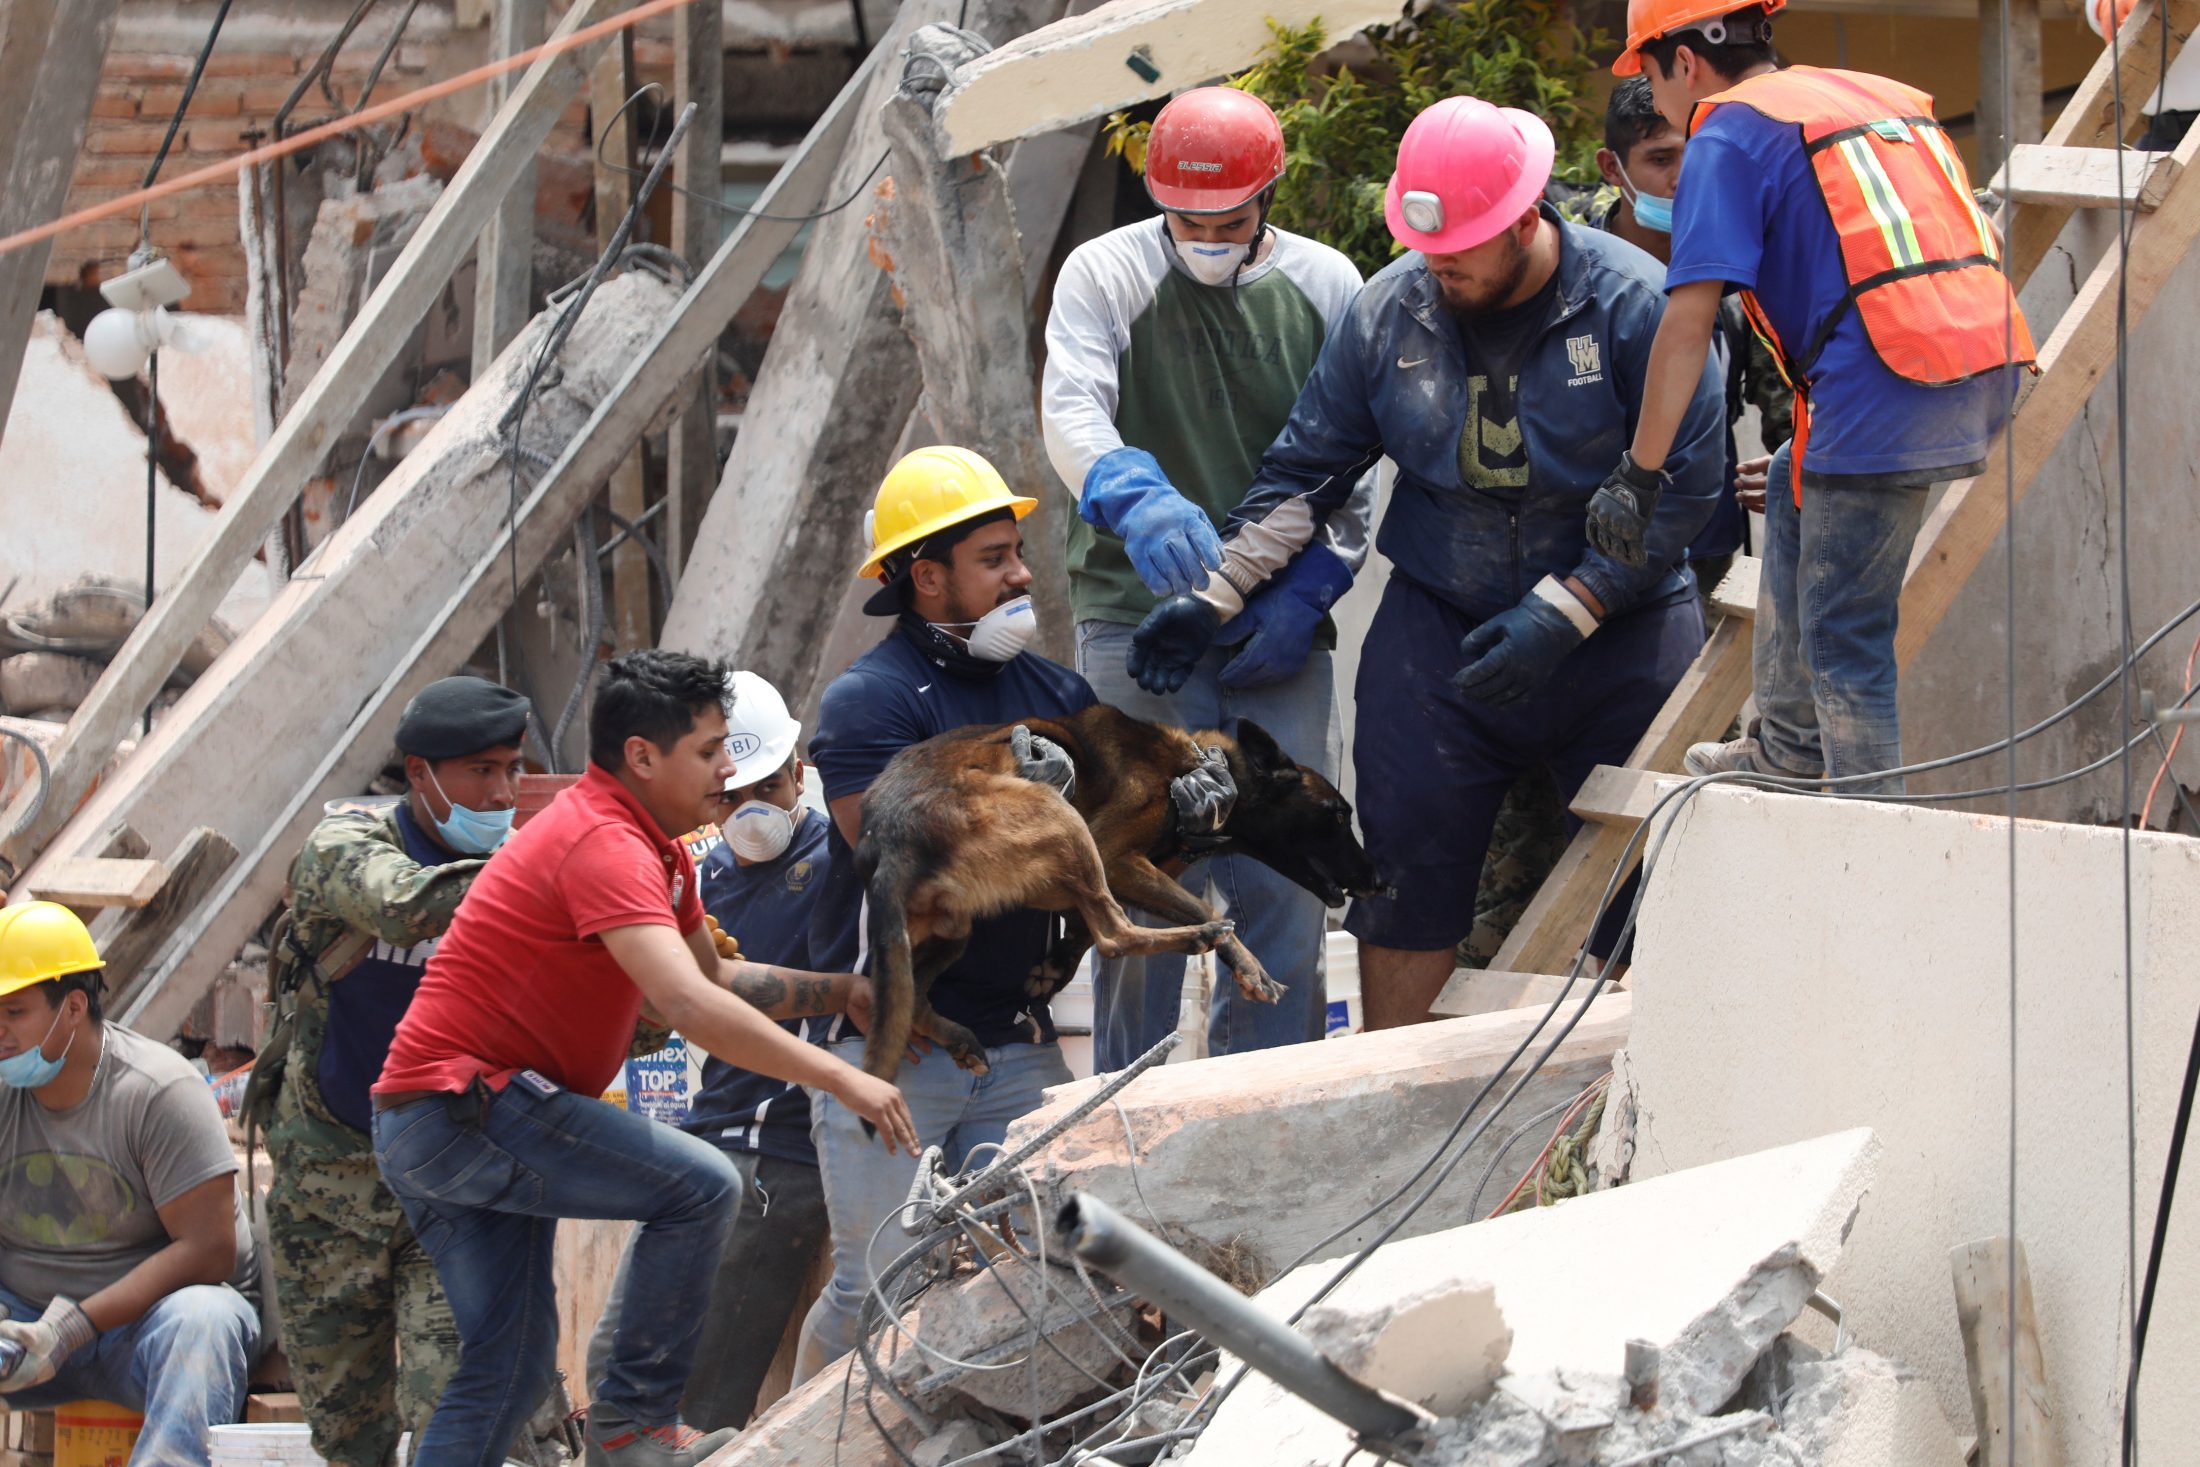 A rescue dog helps in the search for students at the collapsed school. Photo by Edgard Garrido/Reuters